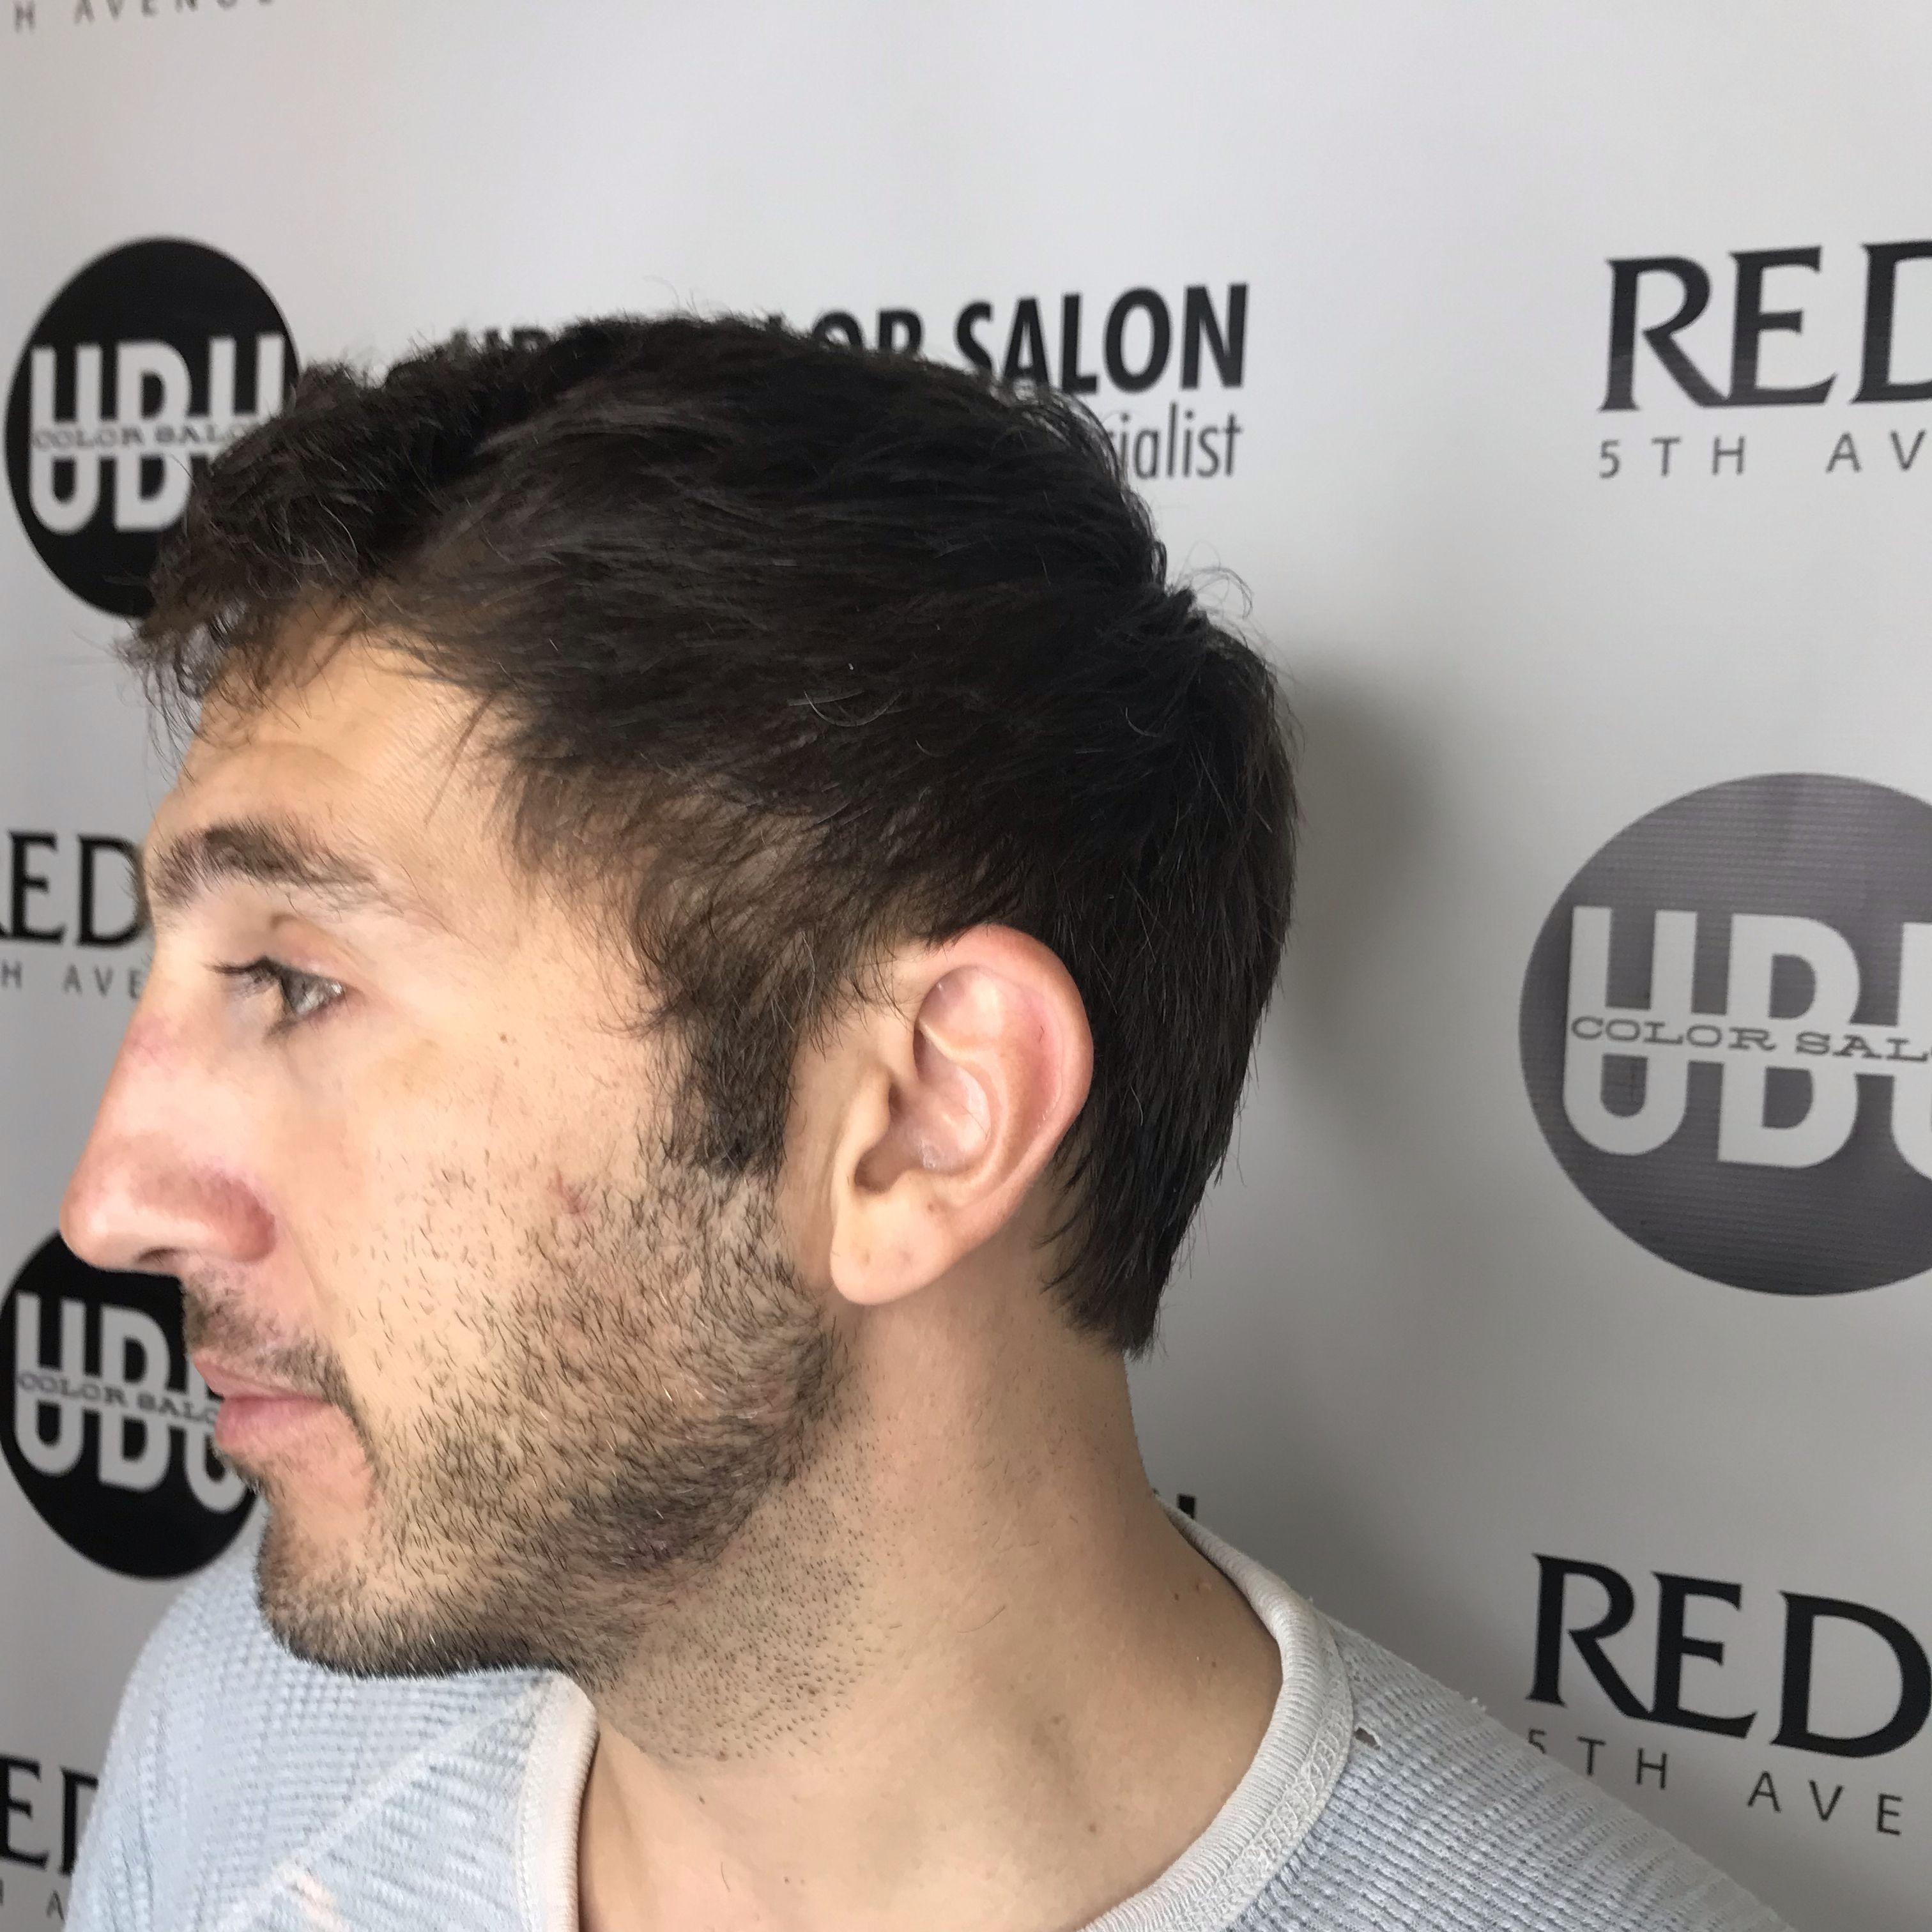 Home Ubu Color Salon In Tampa Fl Haircuts For Men Salons Mens Hairstyles